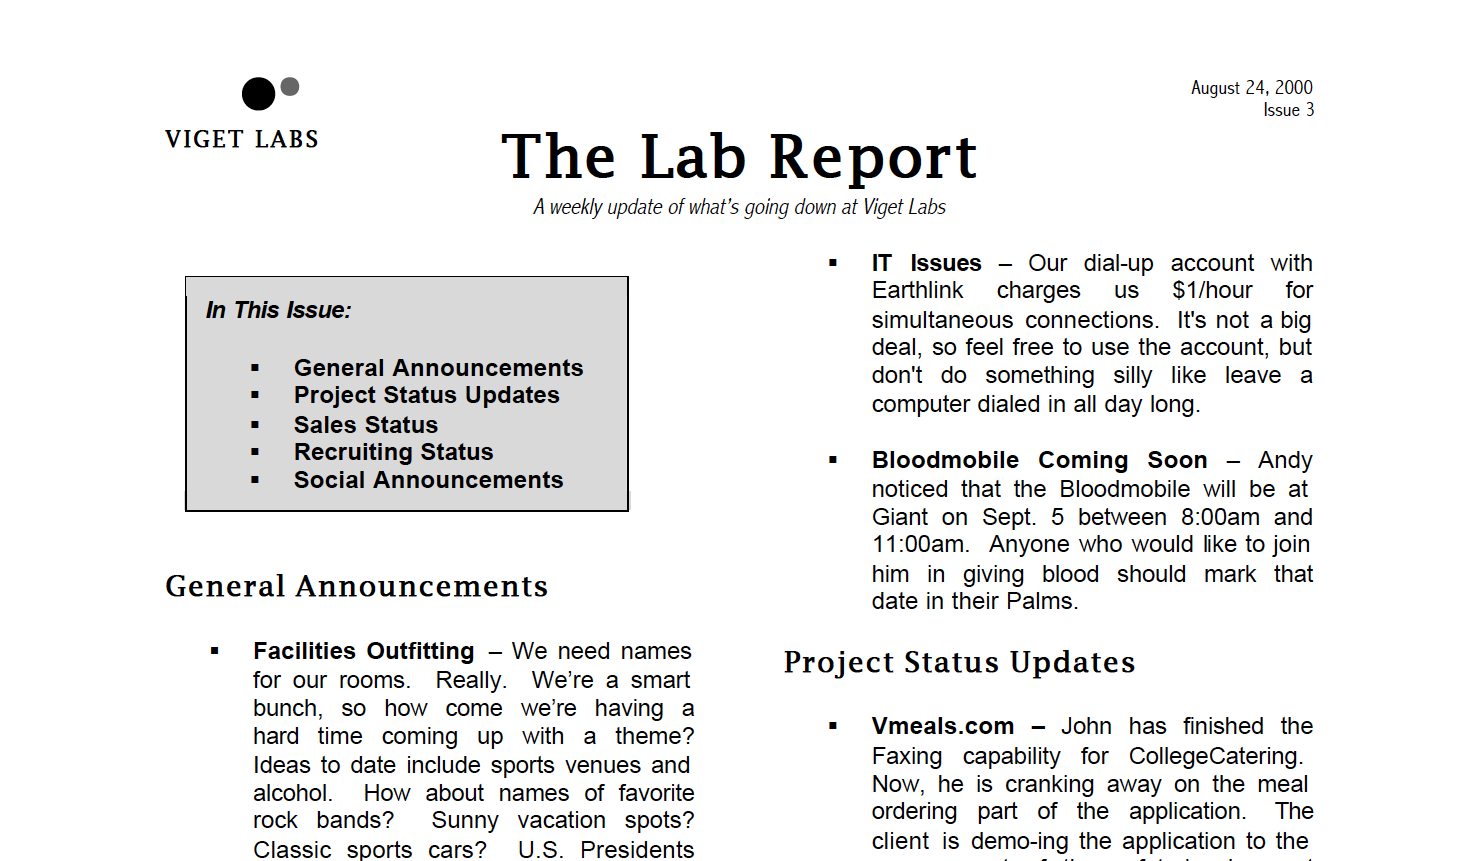 Viget Labs - Third issue of the Lab Report, August 24, 2000